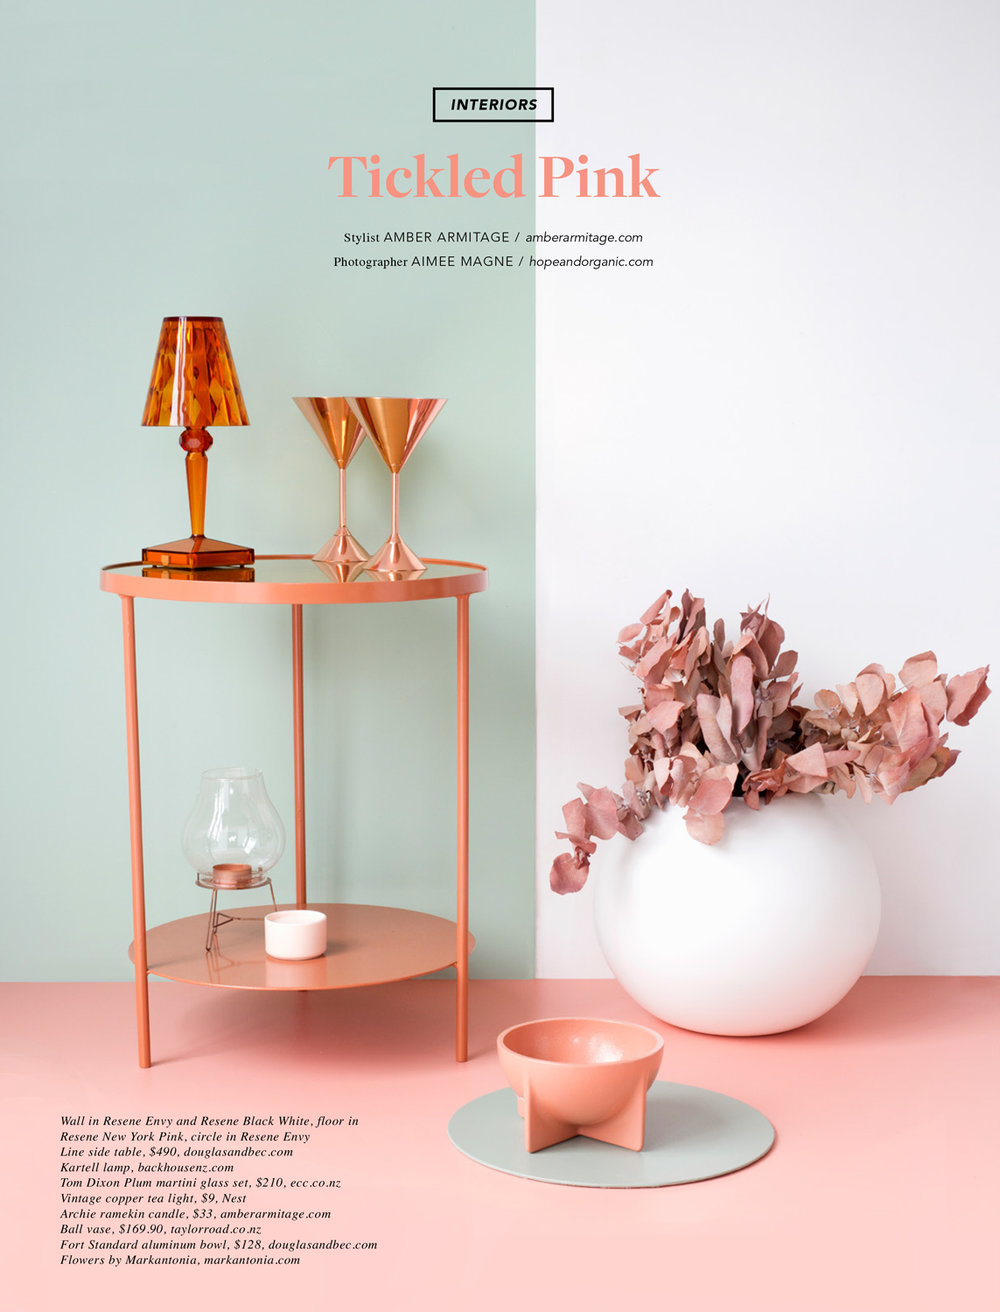 Tickled-Pink-Interiors-Remix.jpg